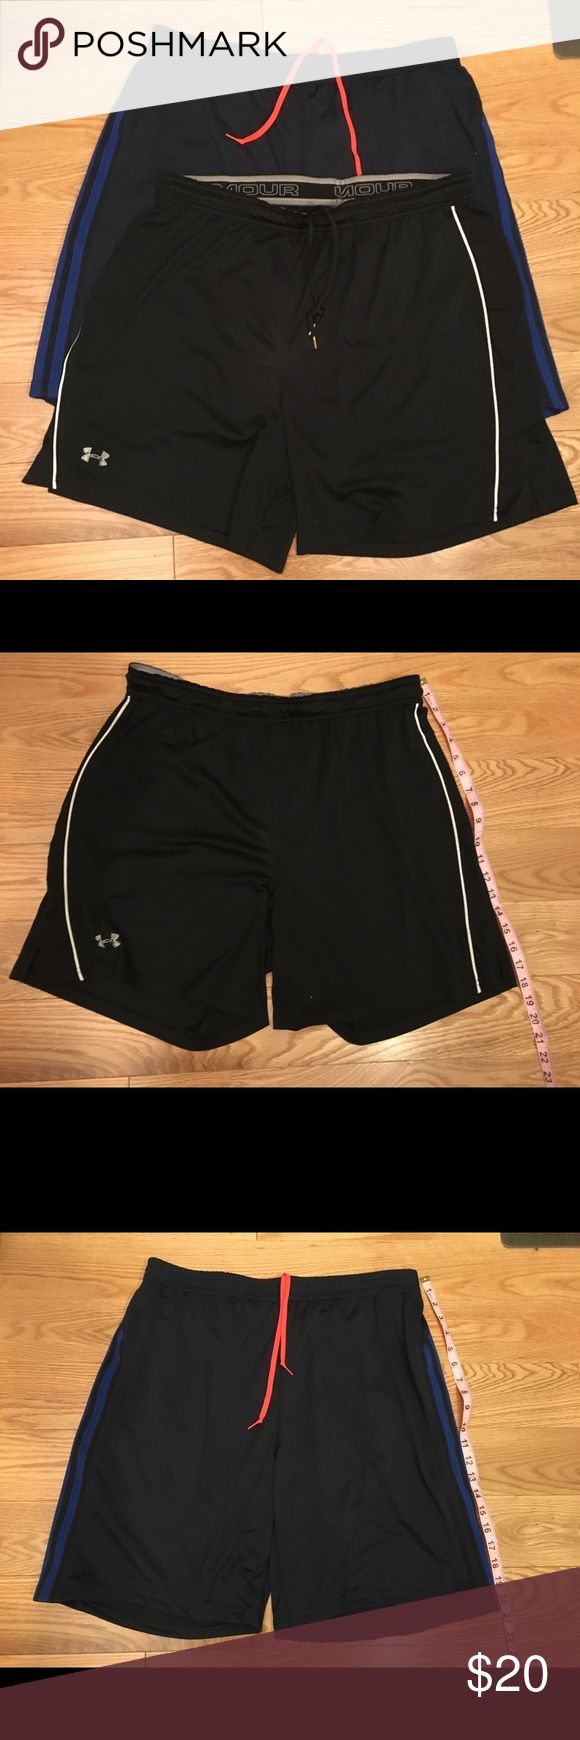 Men's workout shorts UA/Adidas bundle.  Size L. 2 pairs Men's work out shorts. Under Armour dri-fit material without an interior lining - Black w/ white.              Adidas ClimaCool technology, with interior lining - Navy w/orange.   The Under Armour logo is slightly faded as pictured above.  Otherwise excellent condition. Both size L adidas Shorts Athletic